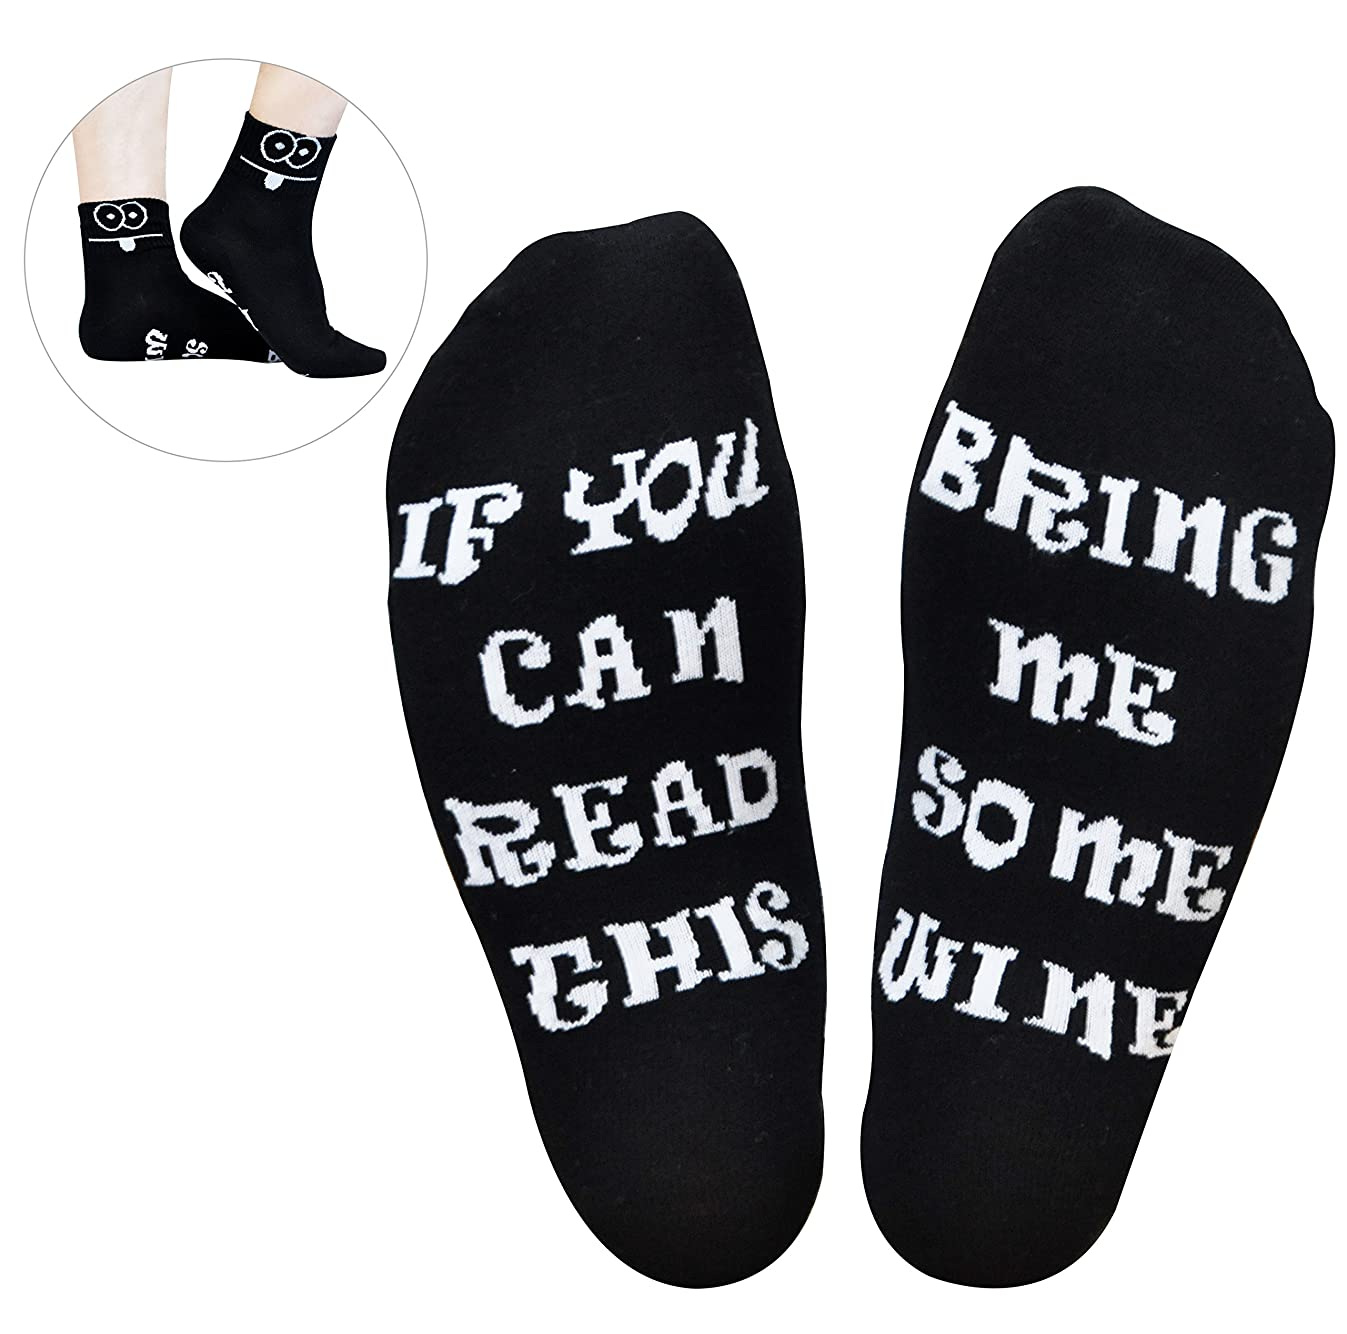 GoldWorld Novelty Cotton Wine Socks Birthday Gifts for Women/Mom/Men w/Funny Saying If You Can Read This Bring Me a Glass of Wine Sock for 30th/40th/50th/60th/70th Birthday Retirement Gifts